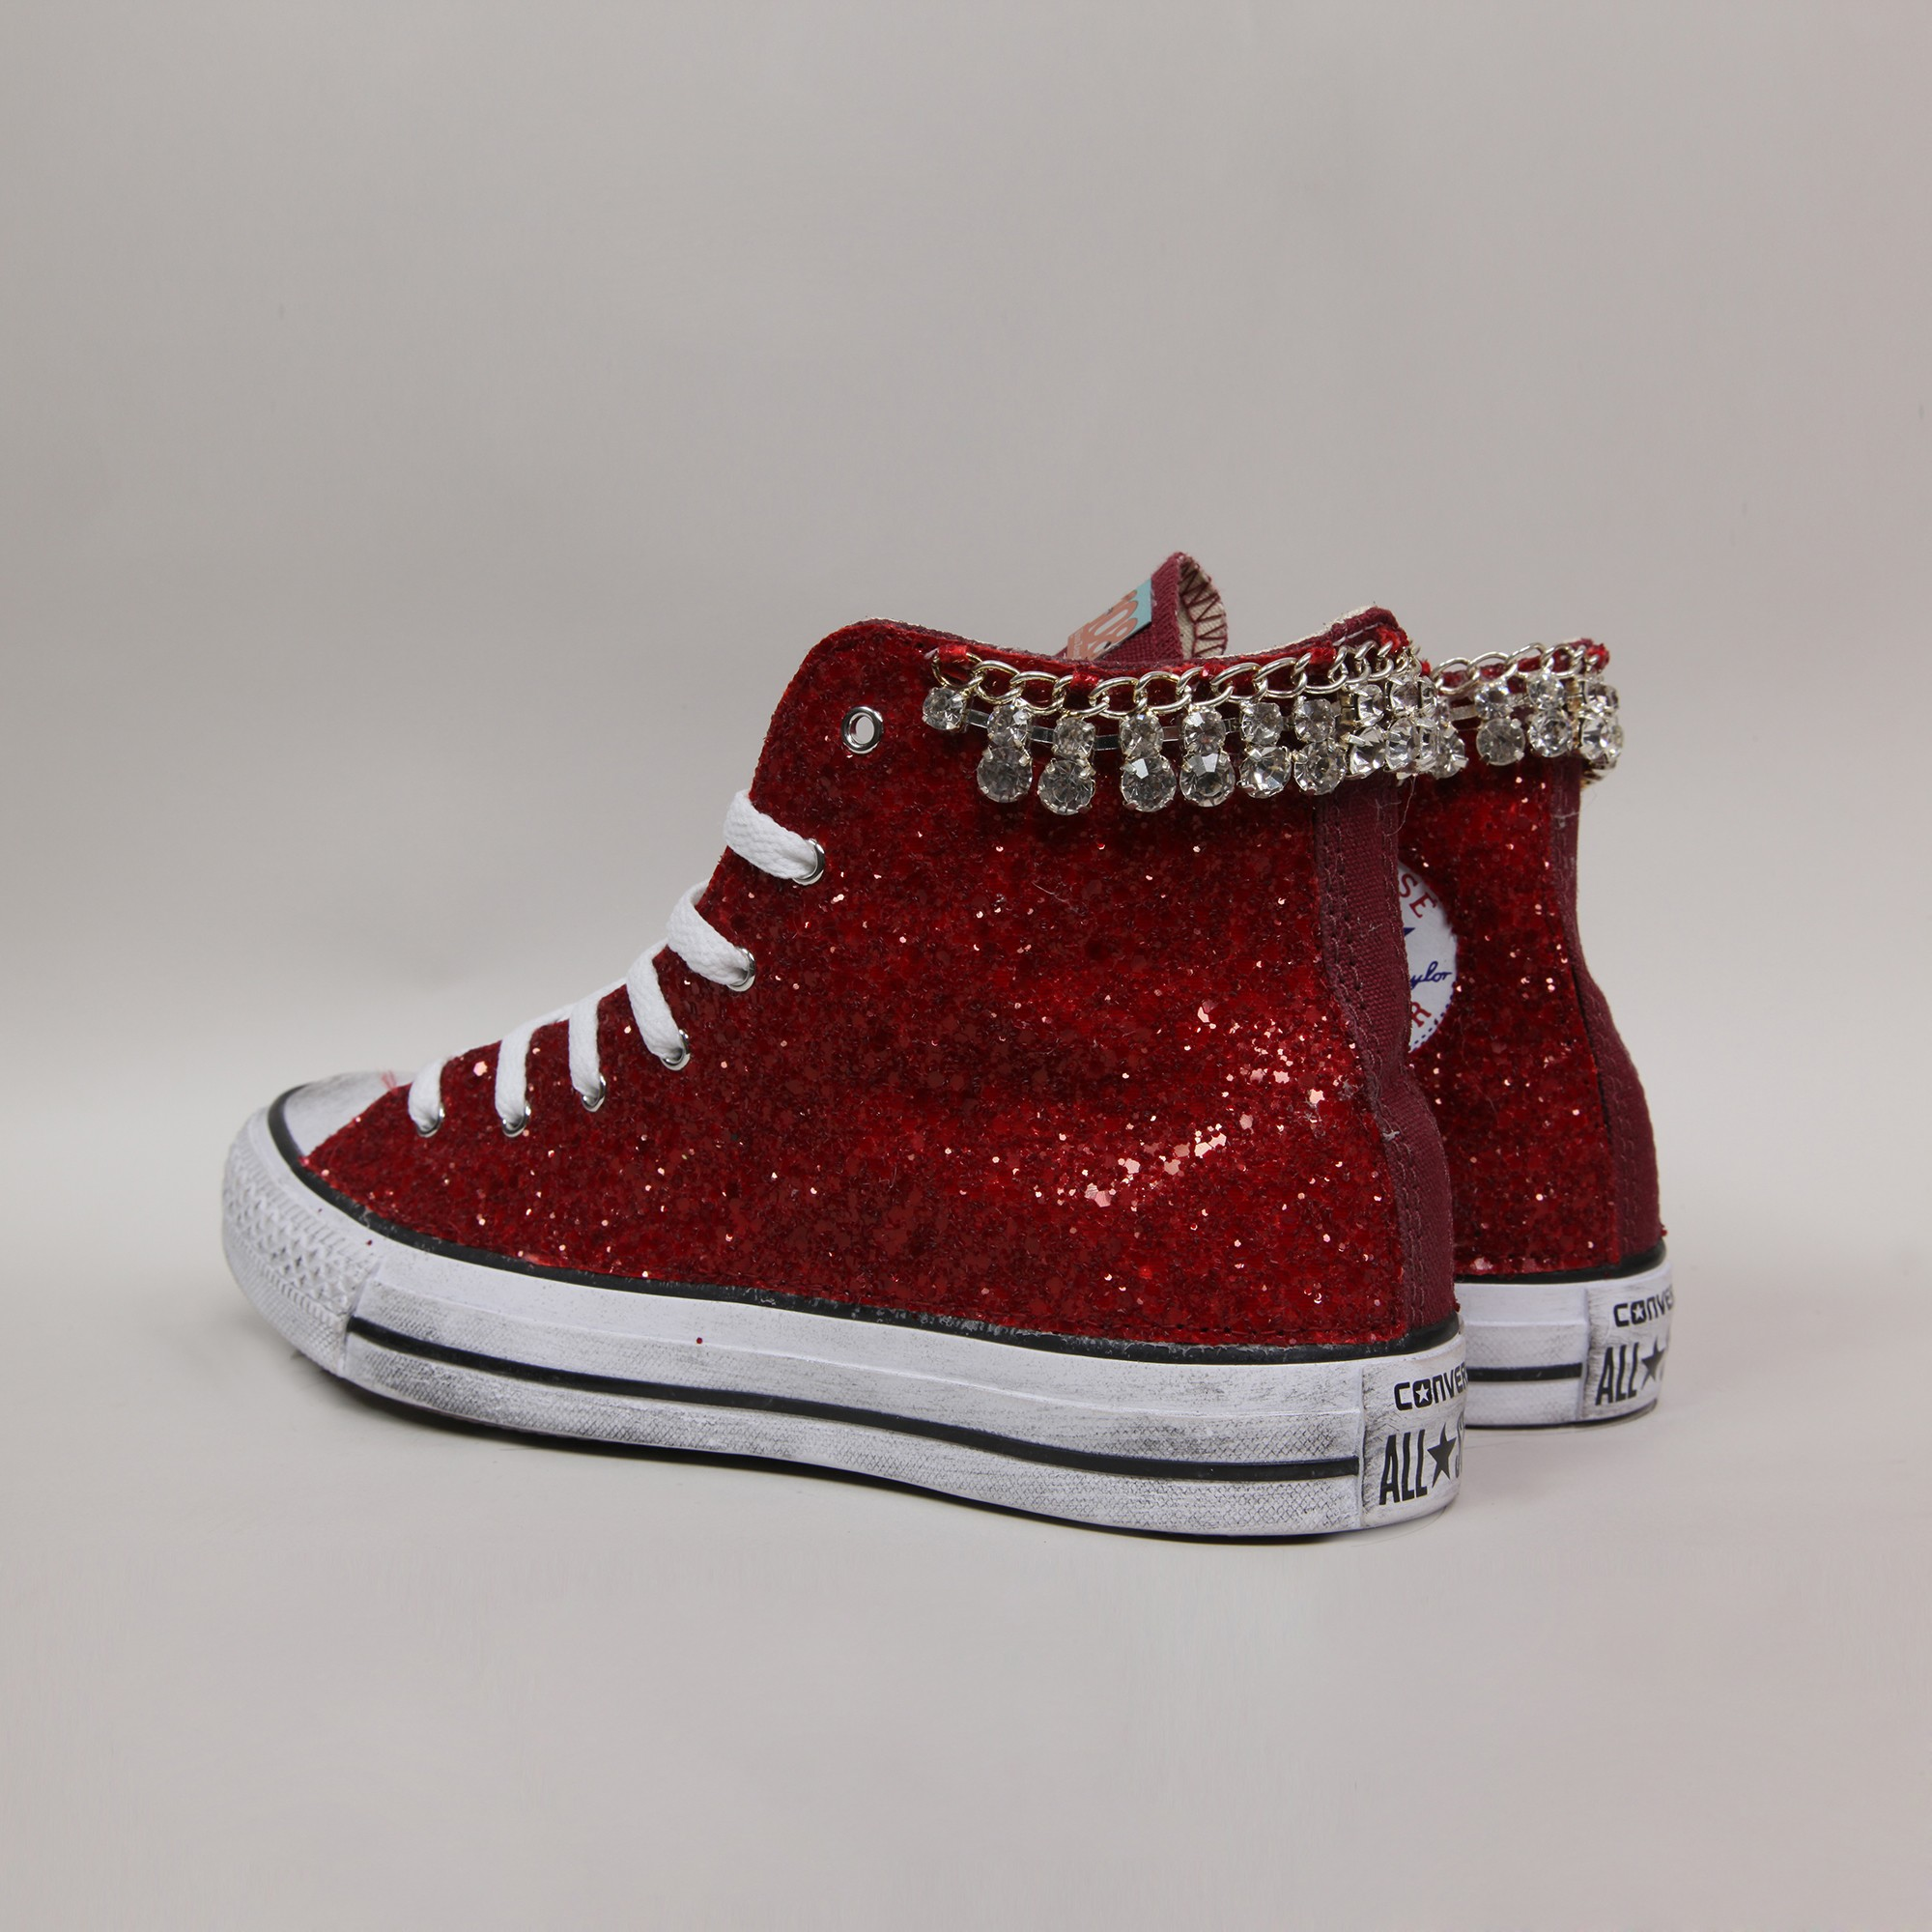 converse bordeaux glitter 74% di sconto trevisomtb.it